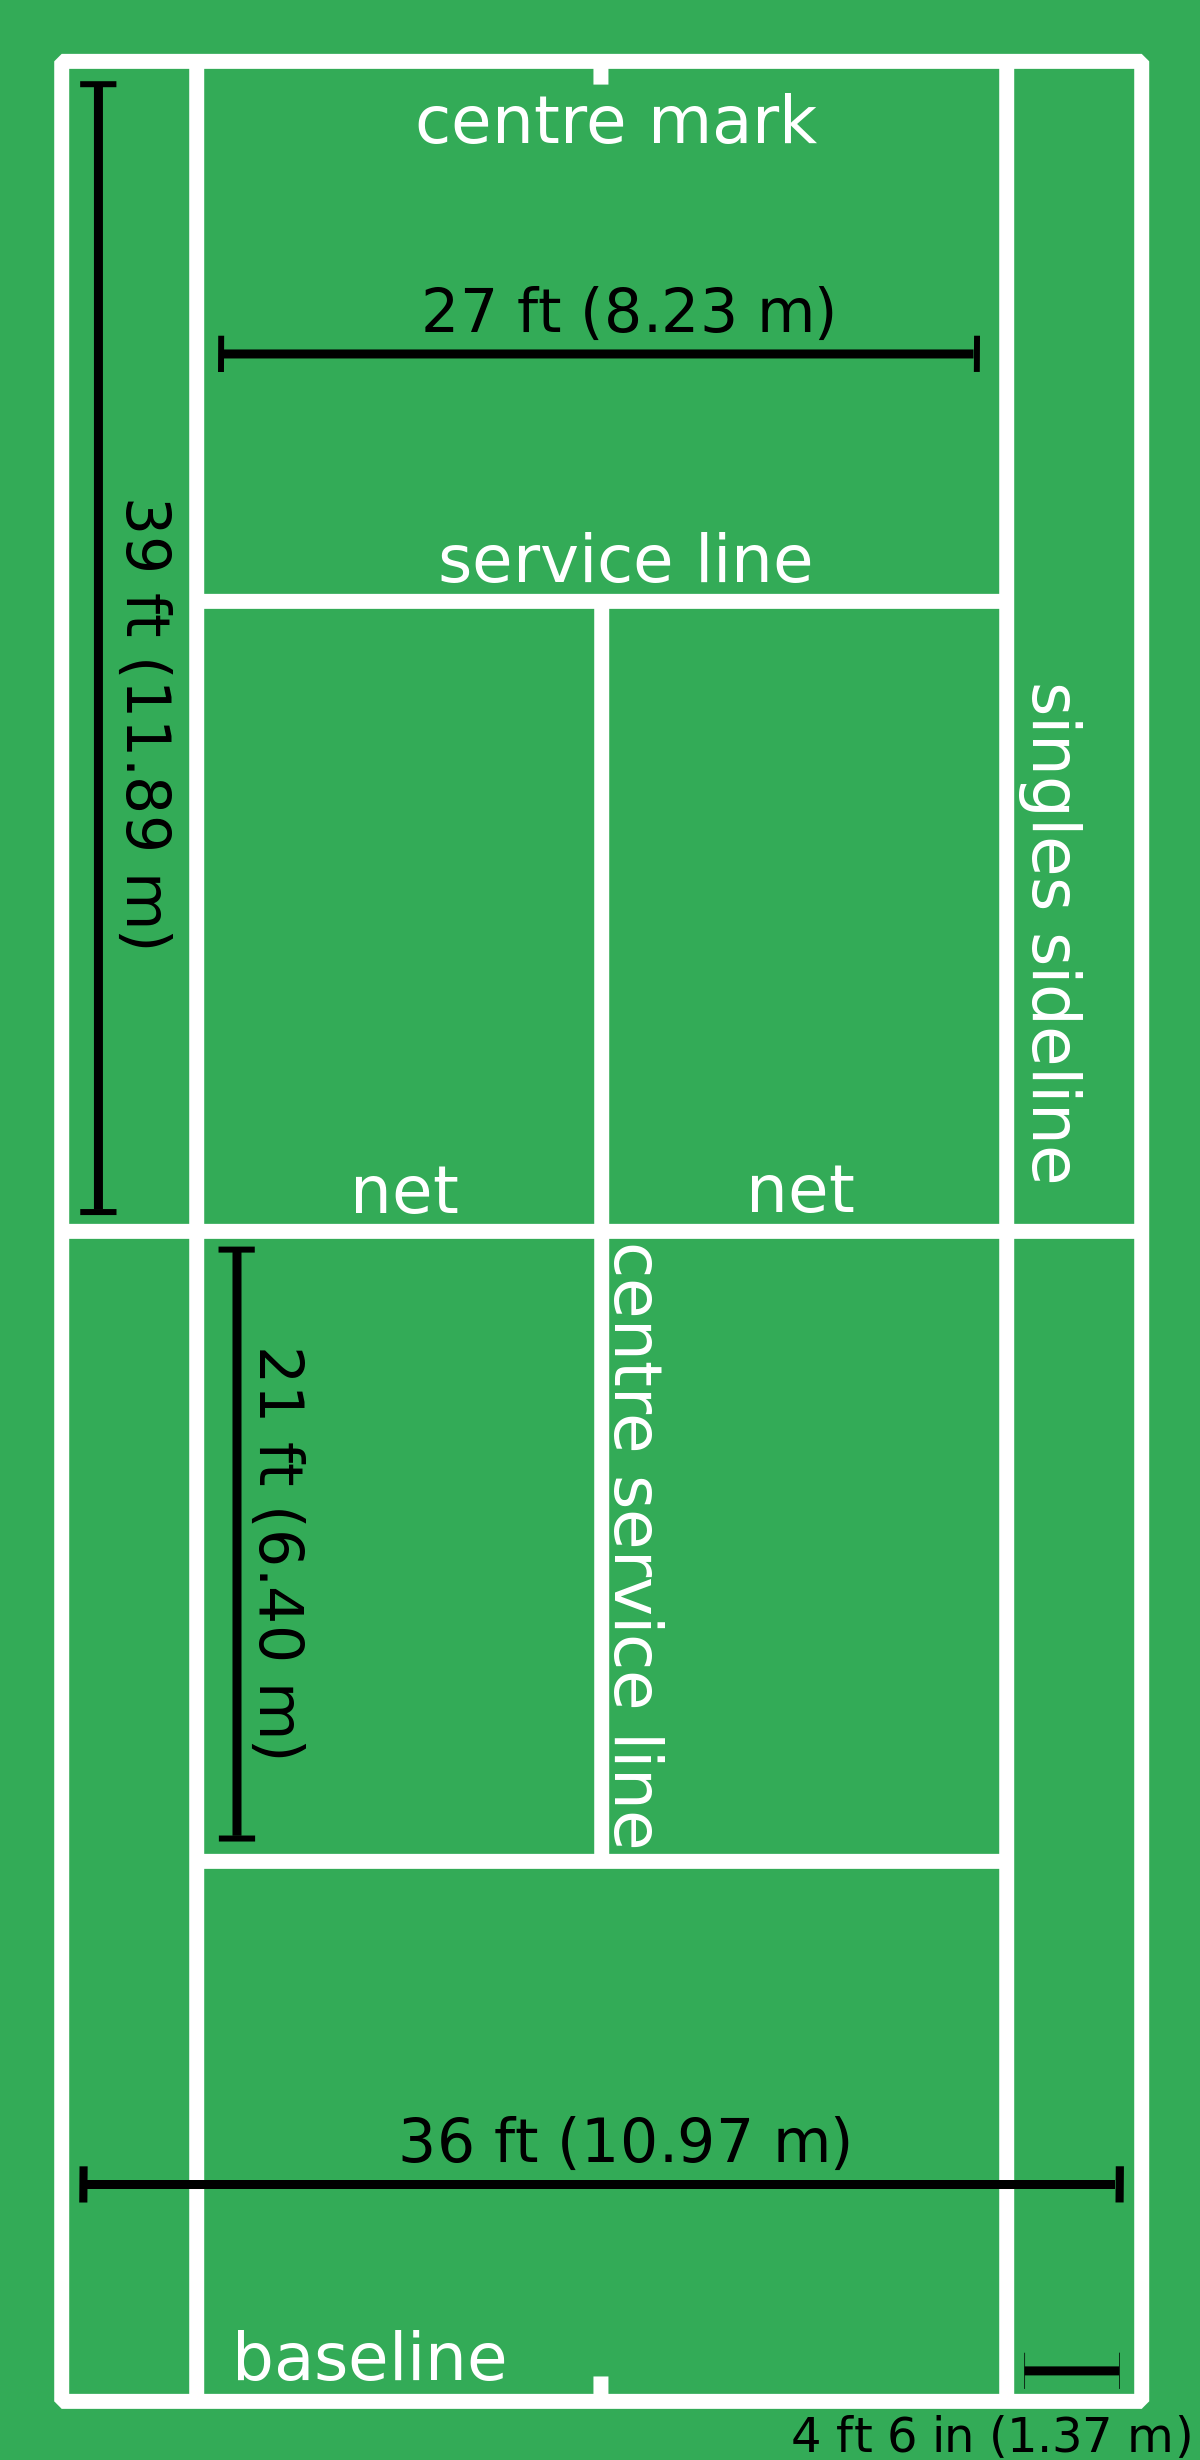 Simple Tennis Court Diagram Printable Diagram Tennis Rules Tennis Tips Indoor Tennis